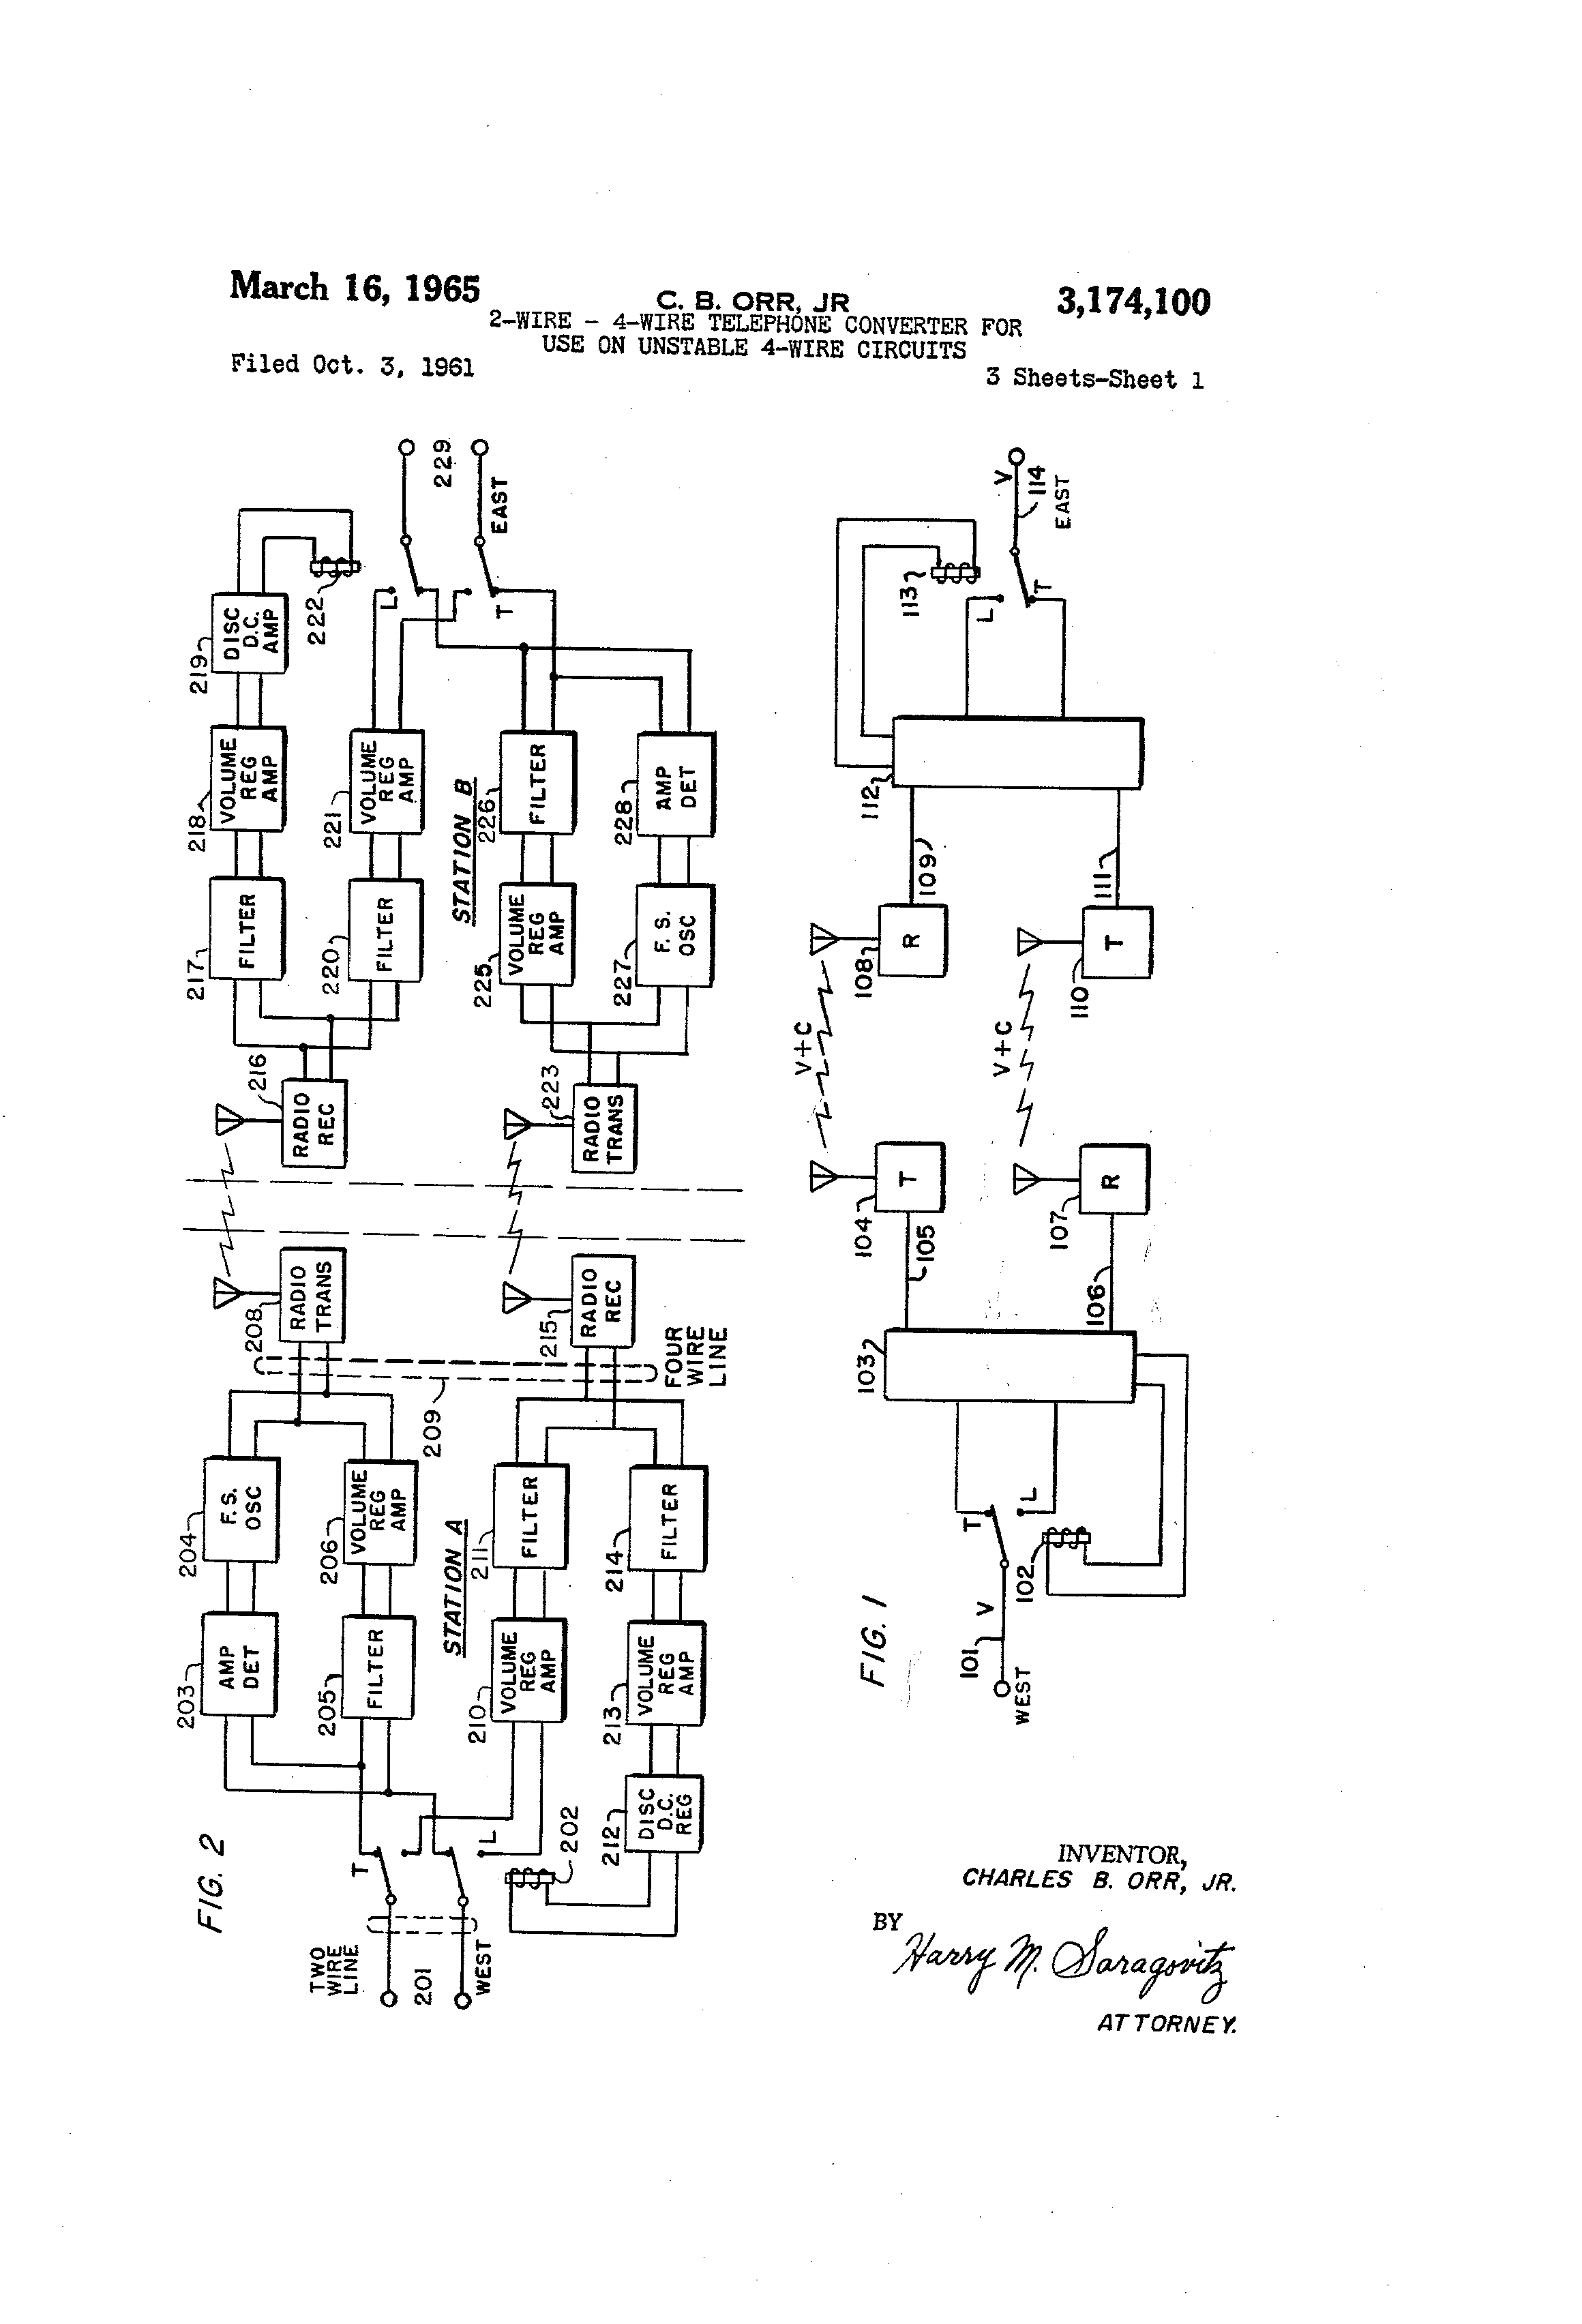 202 Wiring Diagram Together With Telephone Wiring